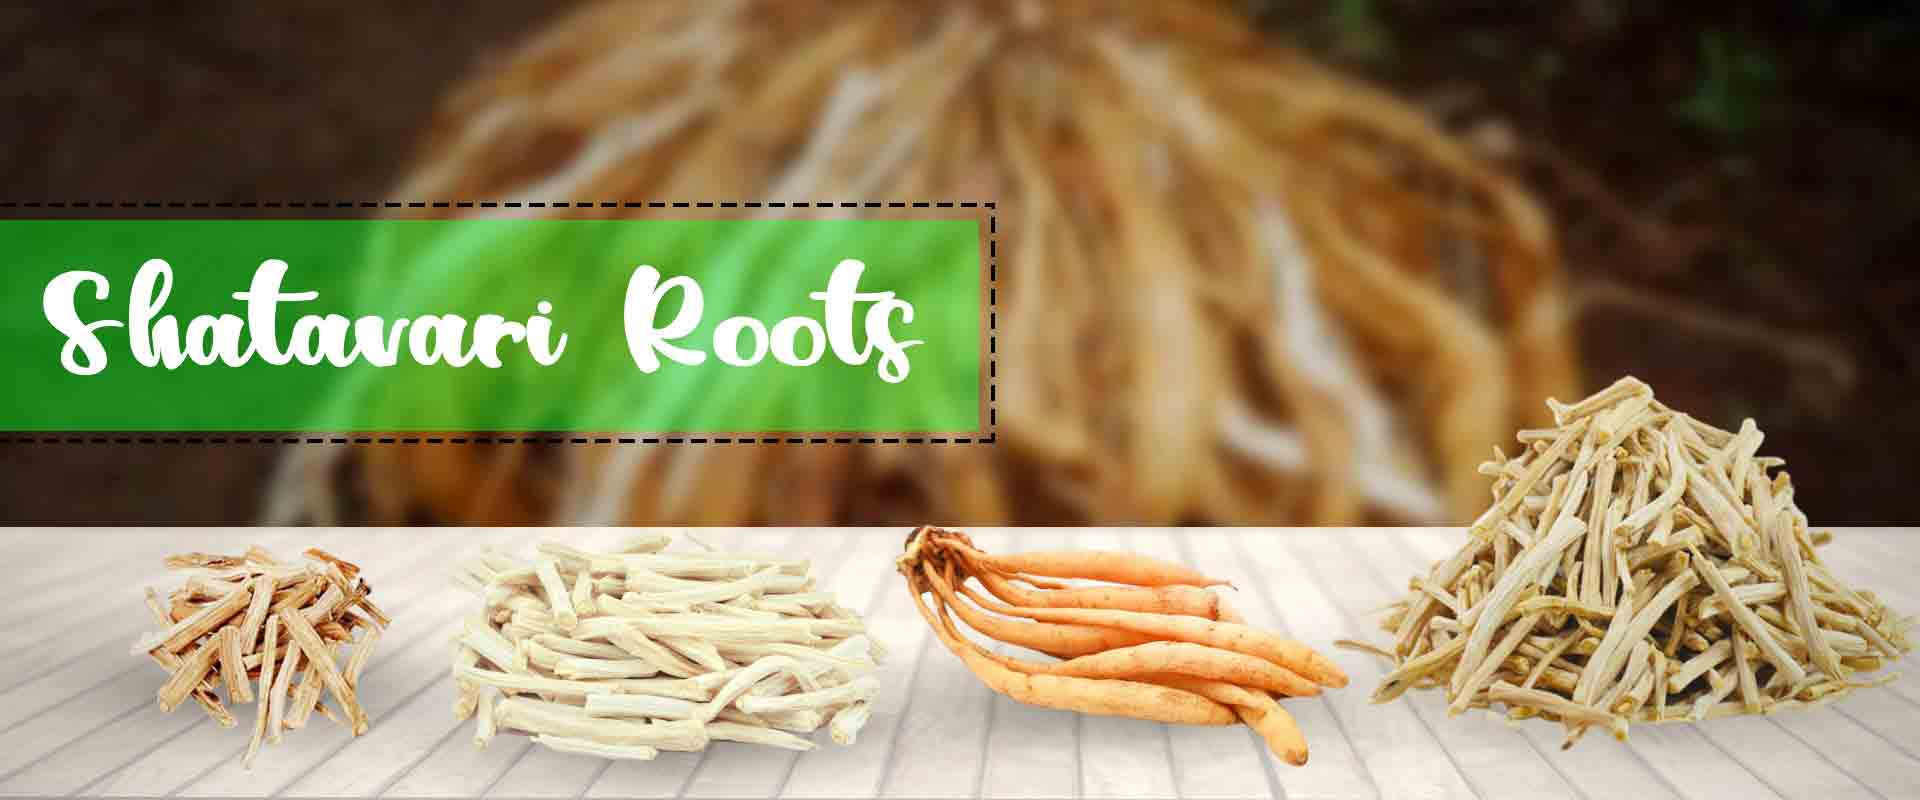 Shatavari Root Suppliers